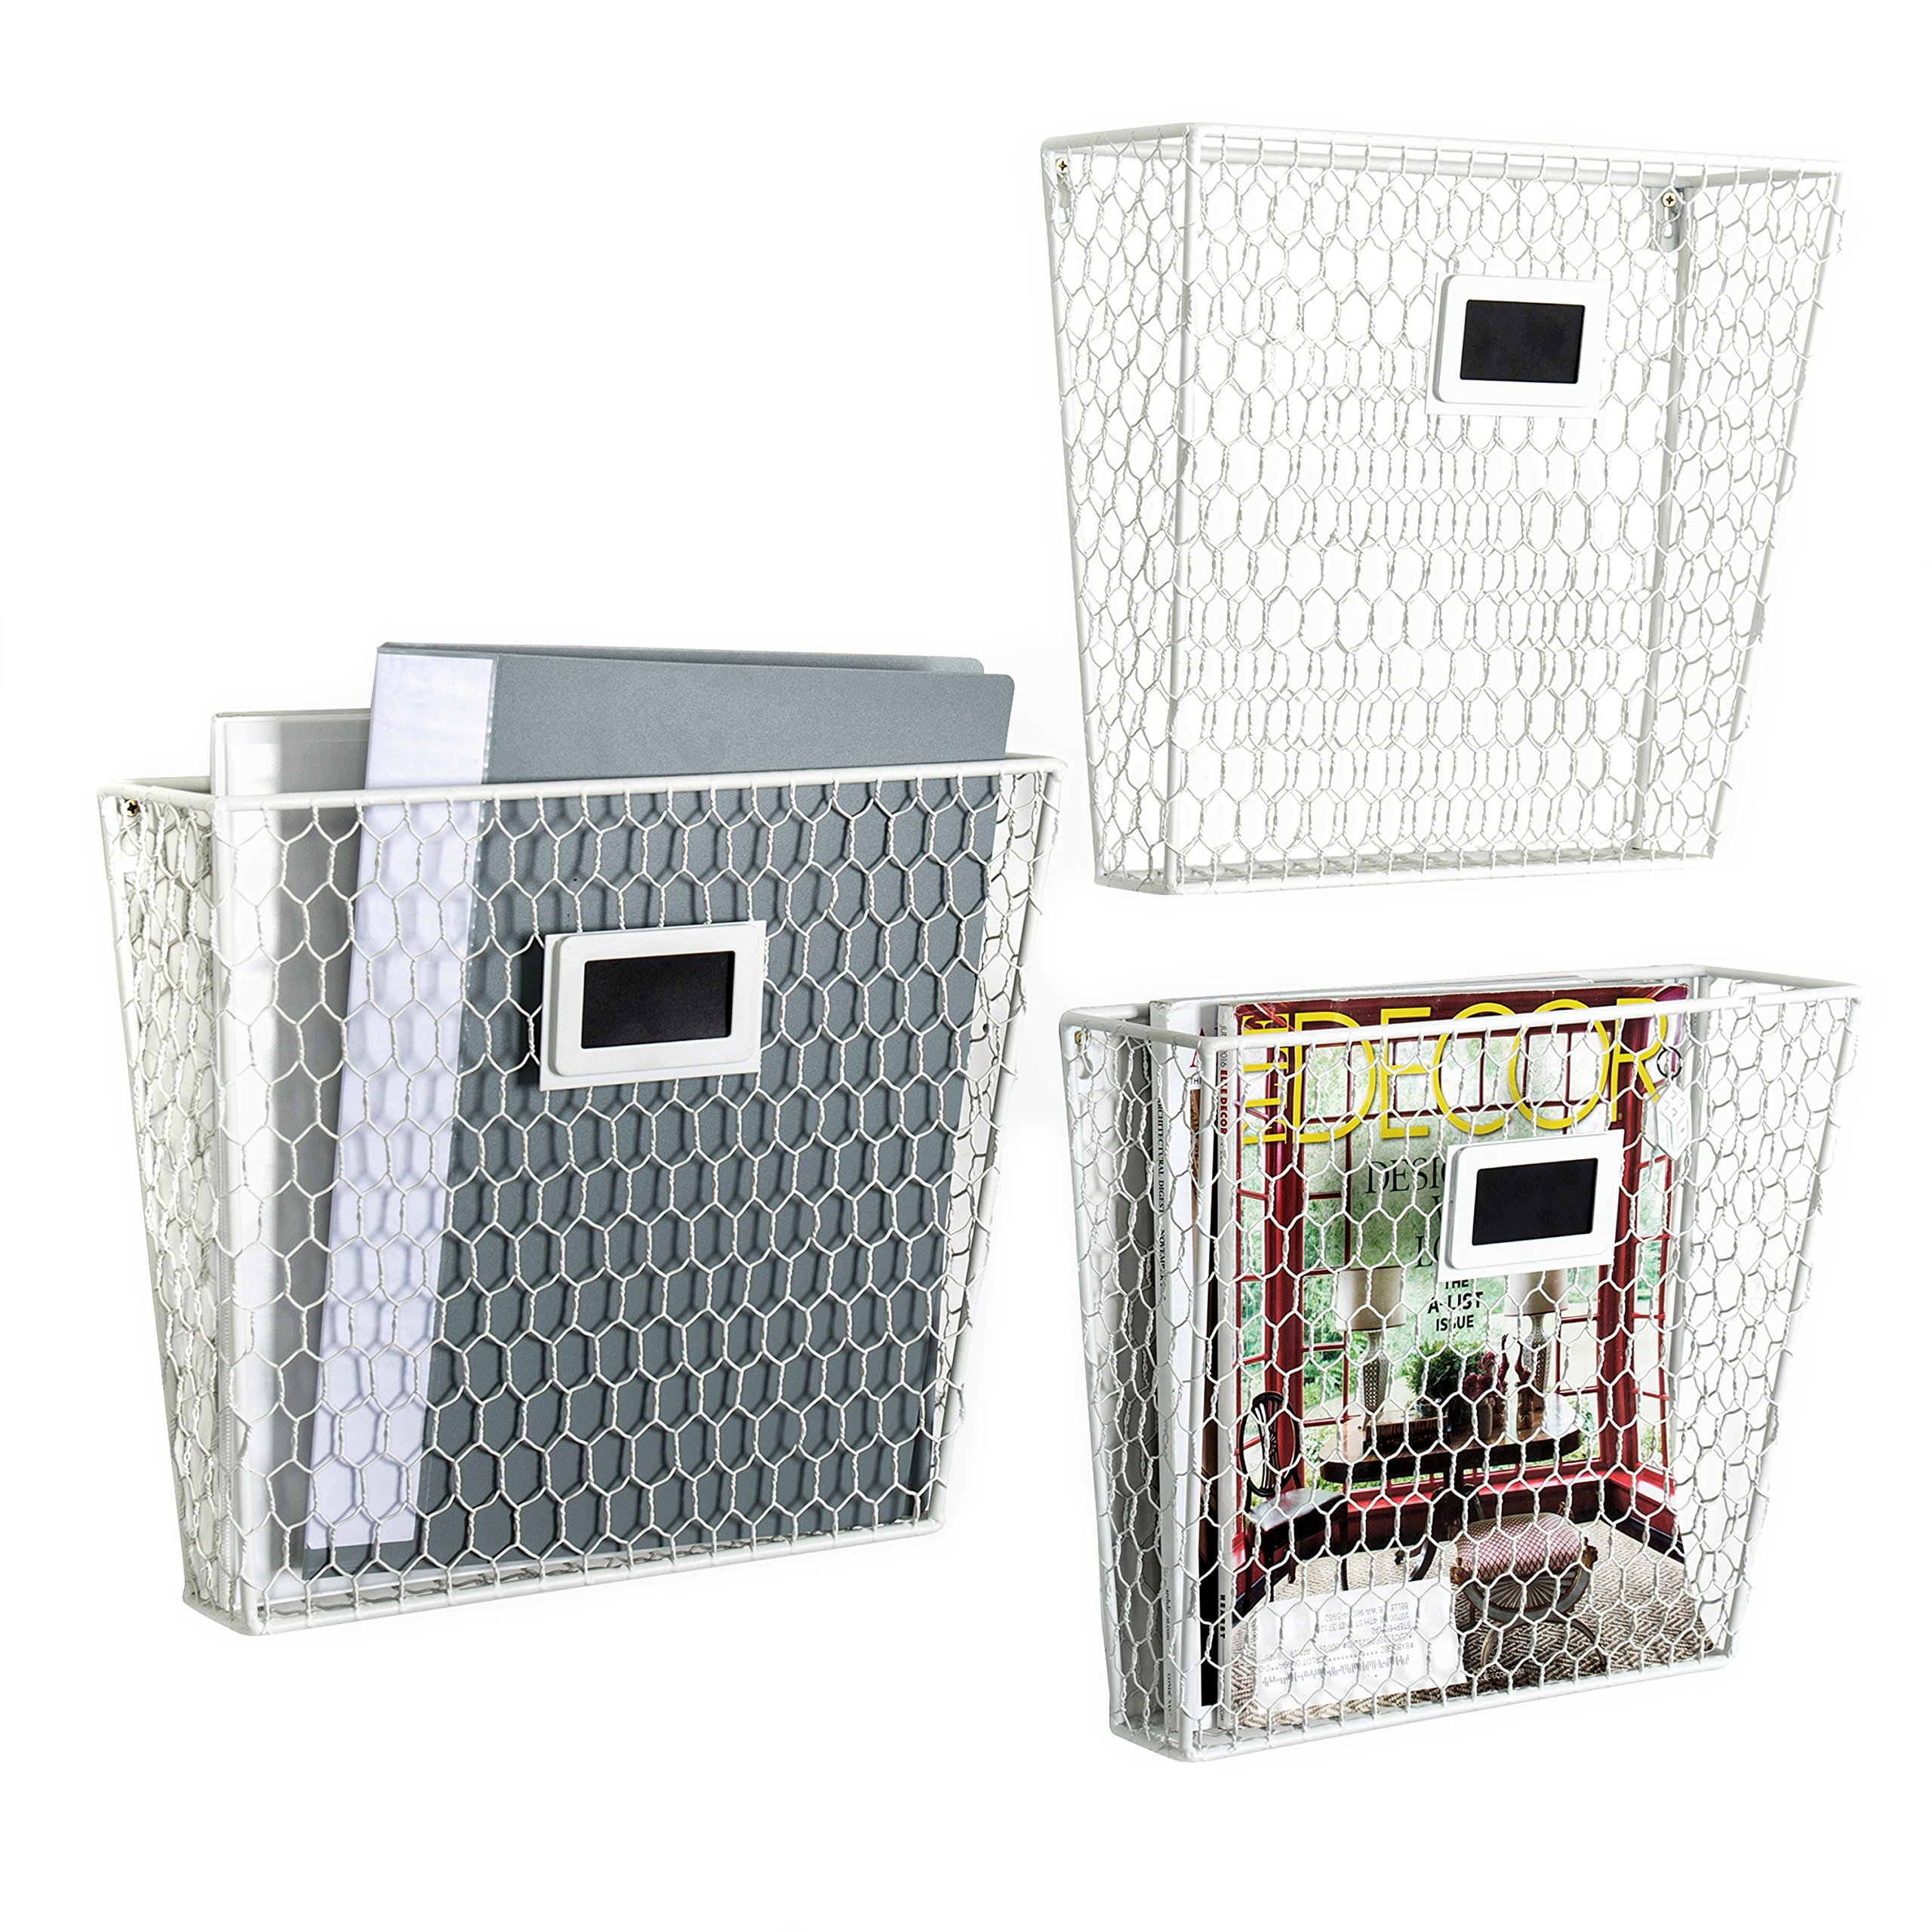 Wall Mounted White Metal Chicken Wire Mail Sorter/Magazine Rack w/Chalkboard Labels, Set of 3